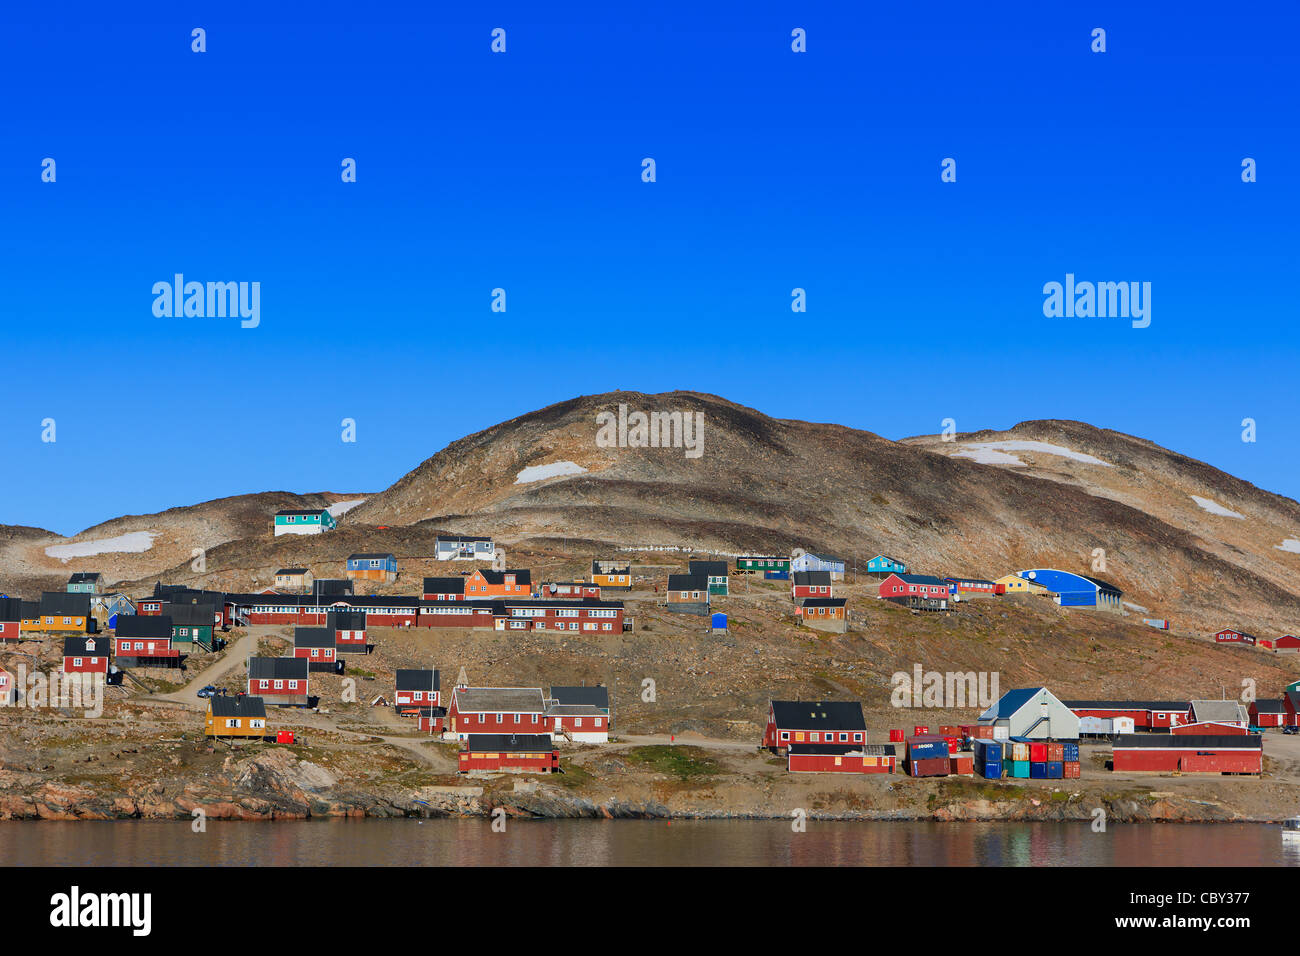 Village of Ittoqqortoormiit, Scoresbysund, east coast Greenland - Stock Image